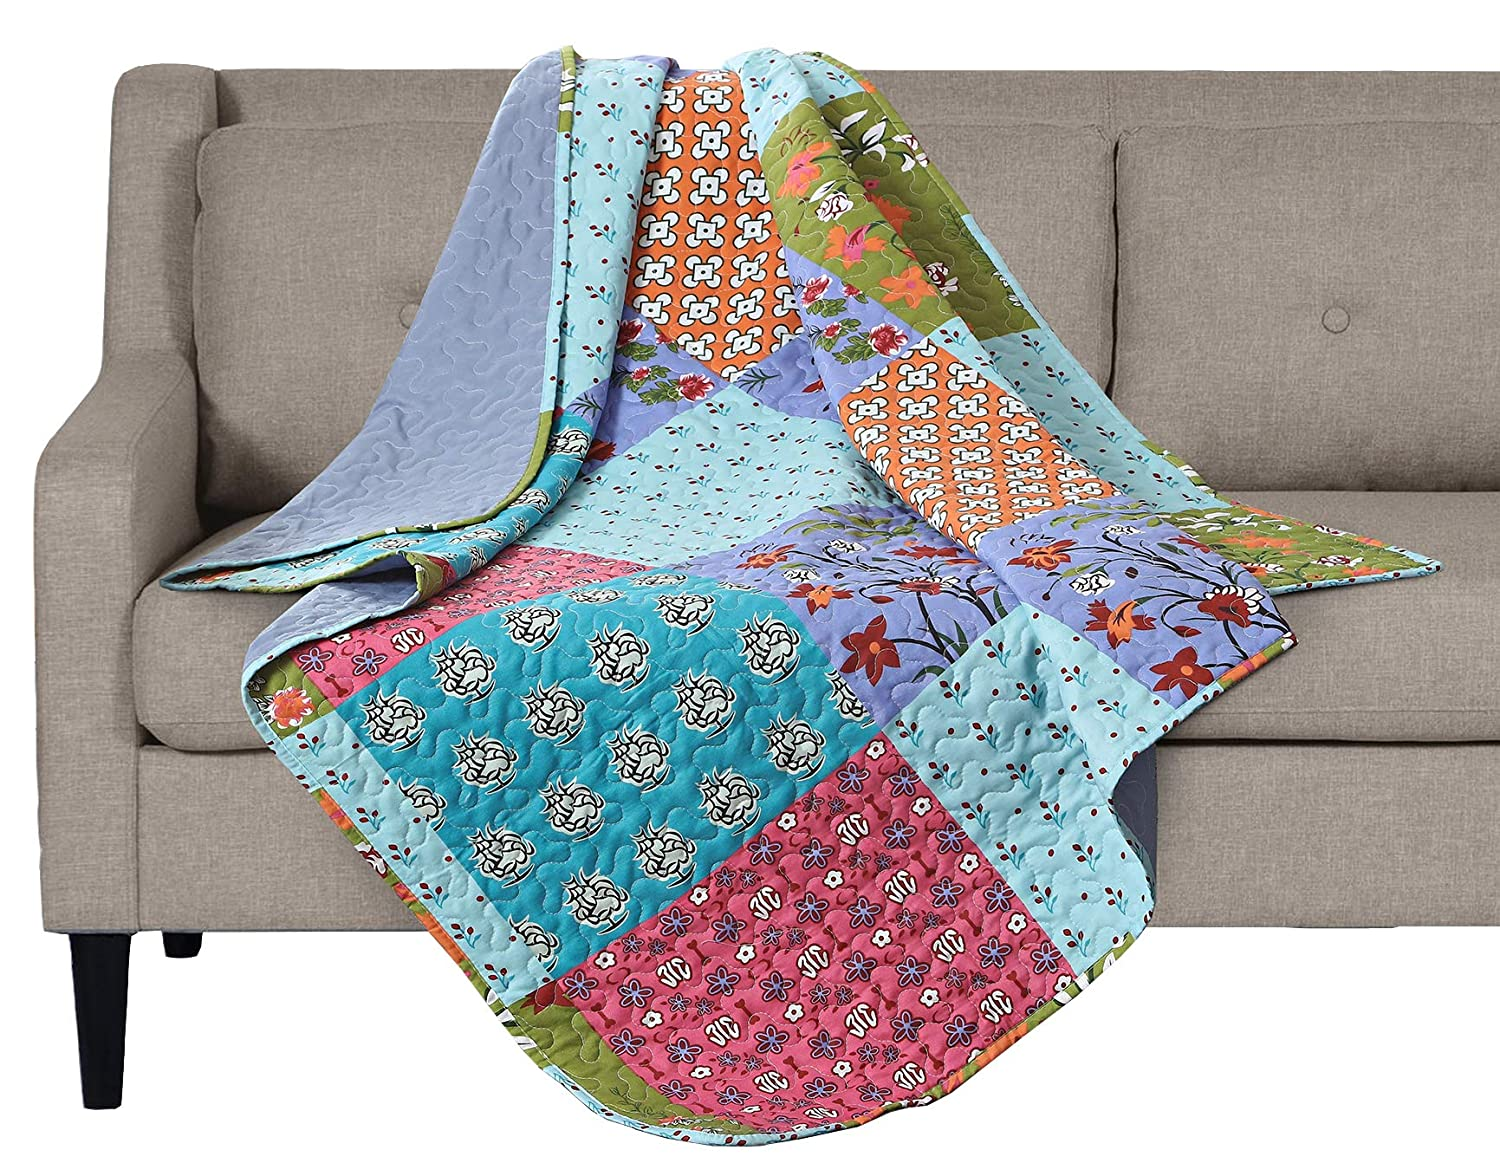 All is Bright Printed Quilted Throw Blanket